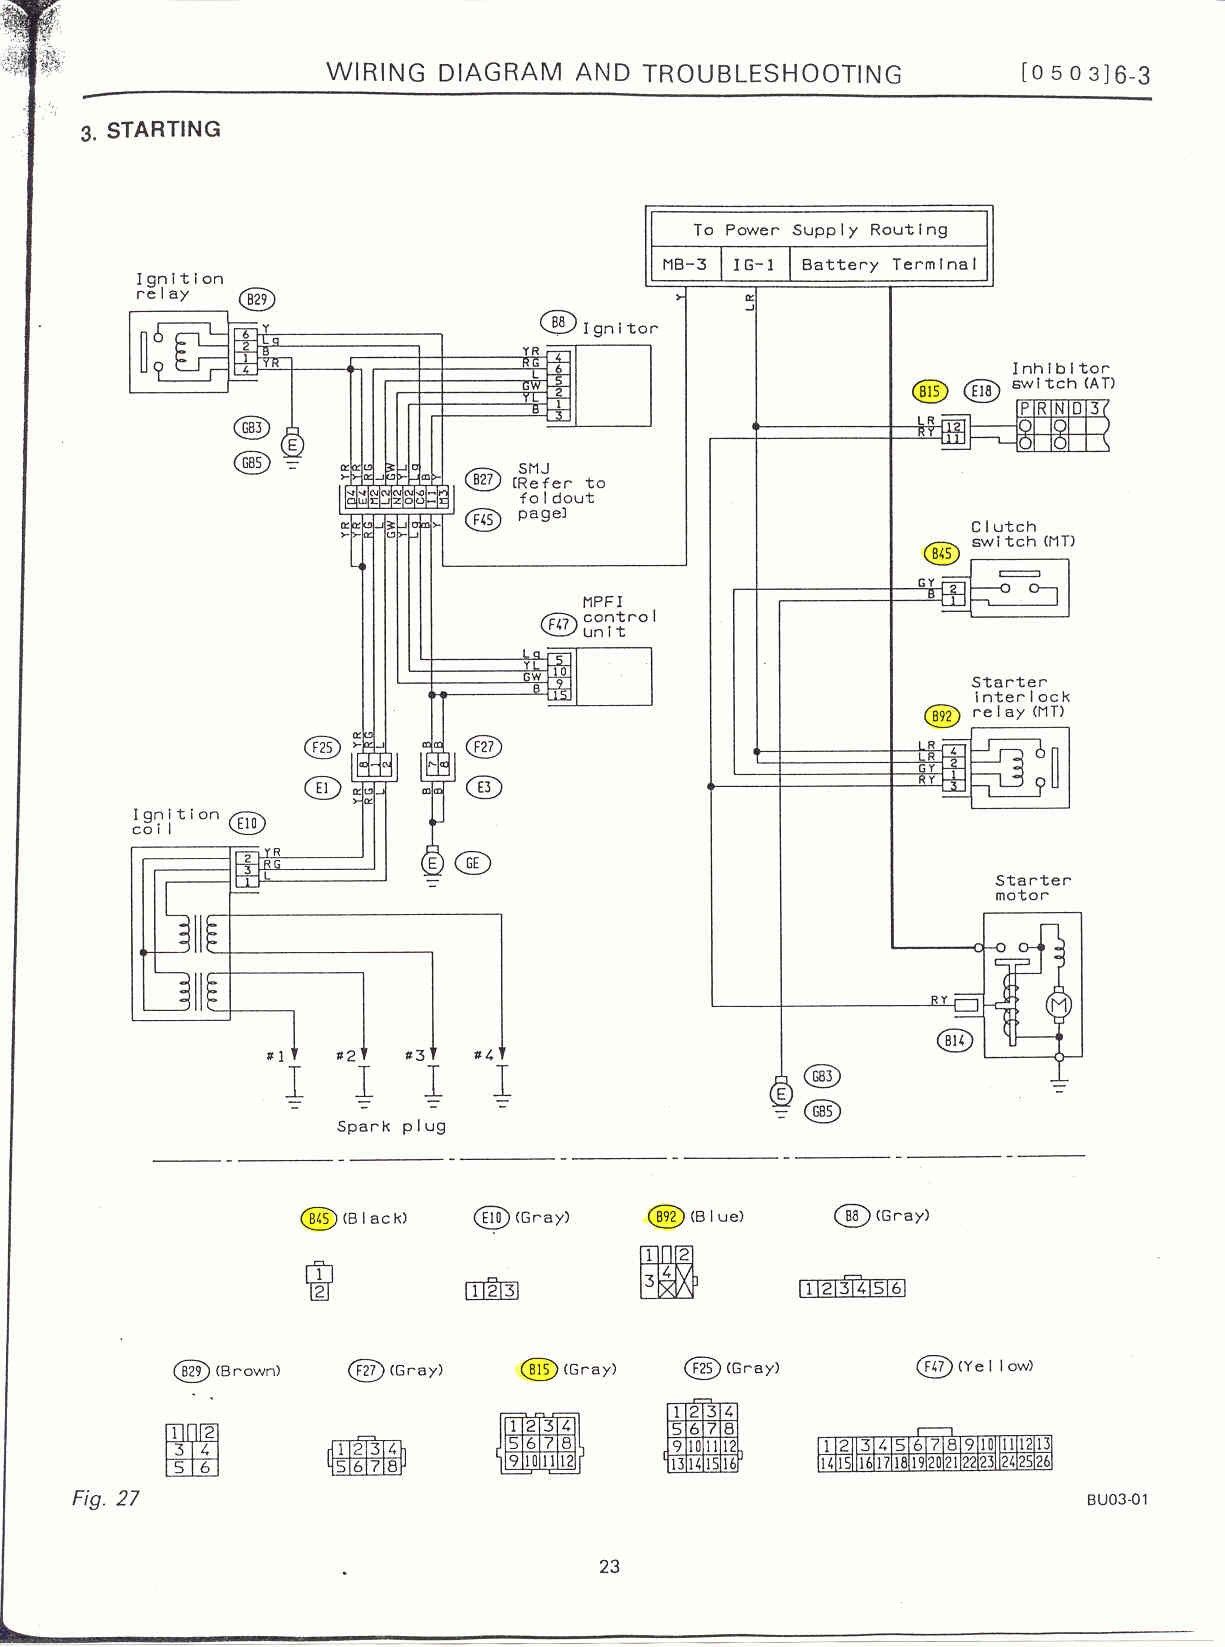 Subaru Legacy Wiring Diagram Regulator Electrical Schematics Diagrams 94 Trusted U2022 Color Codes